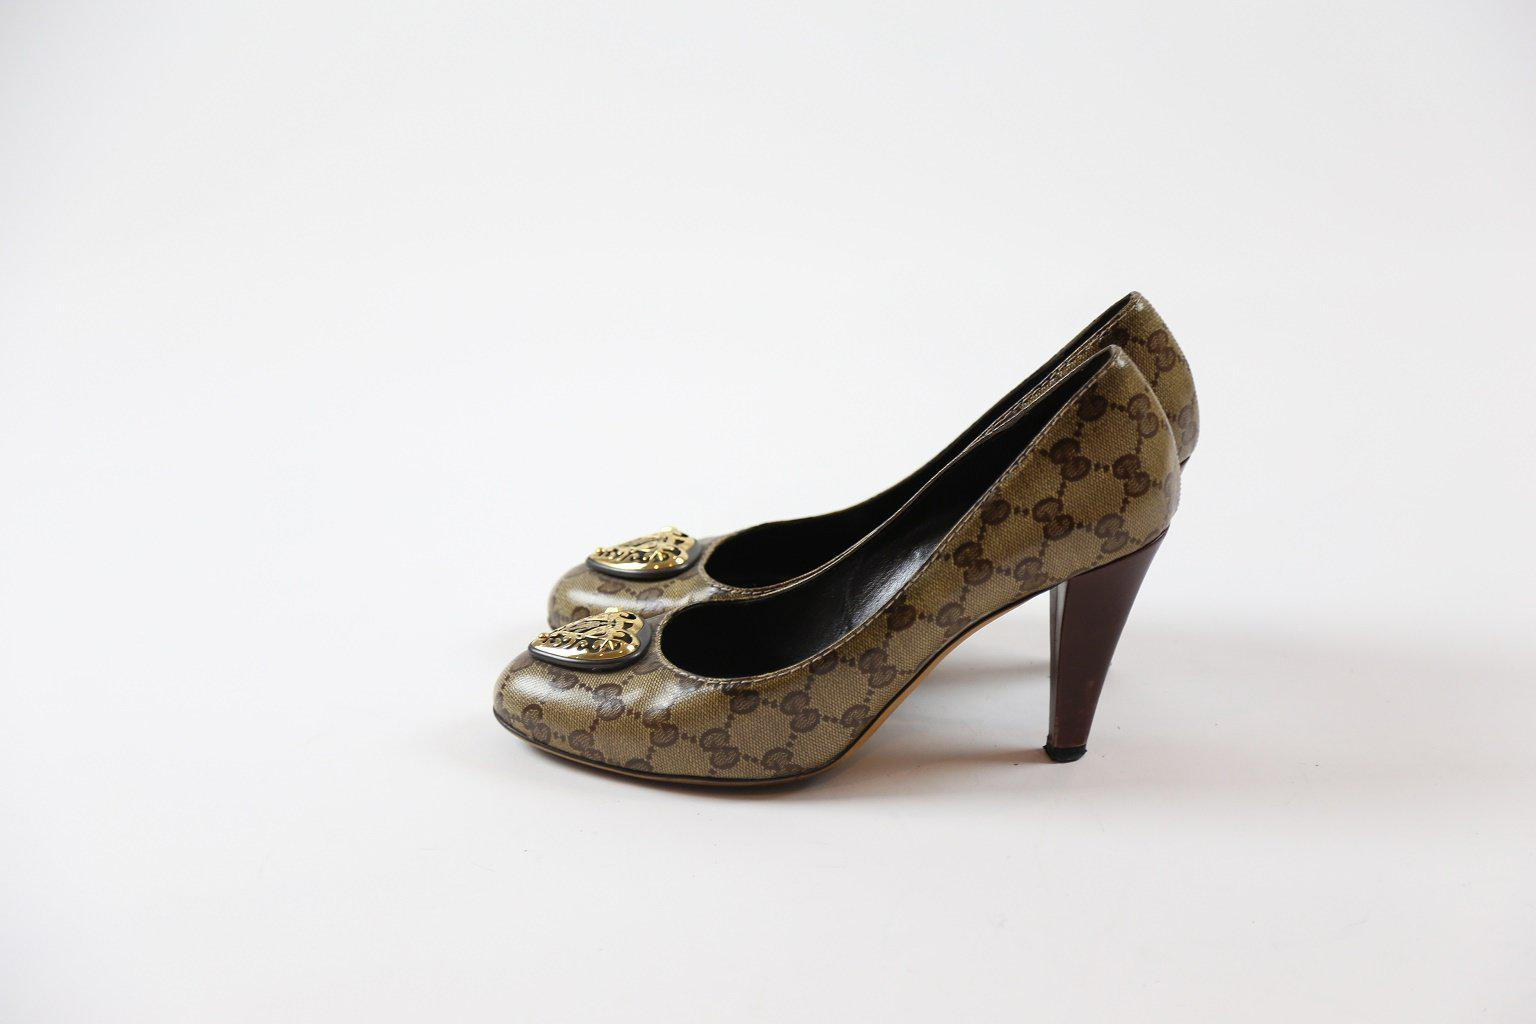 Gucci Classic Leather Pumps with Gold Heart Hardware / Size - 40